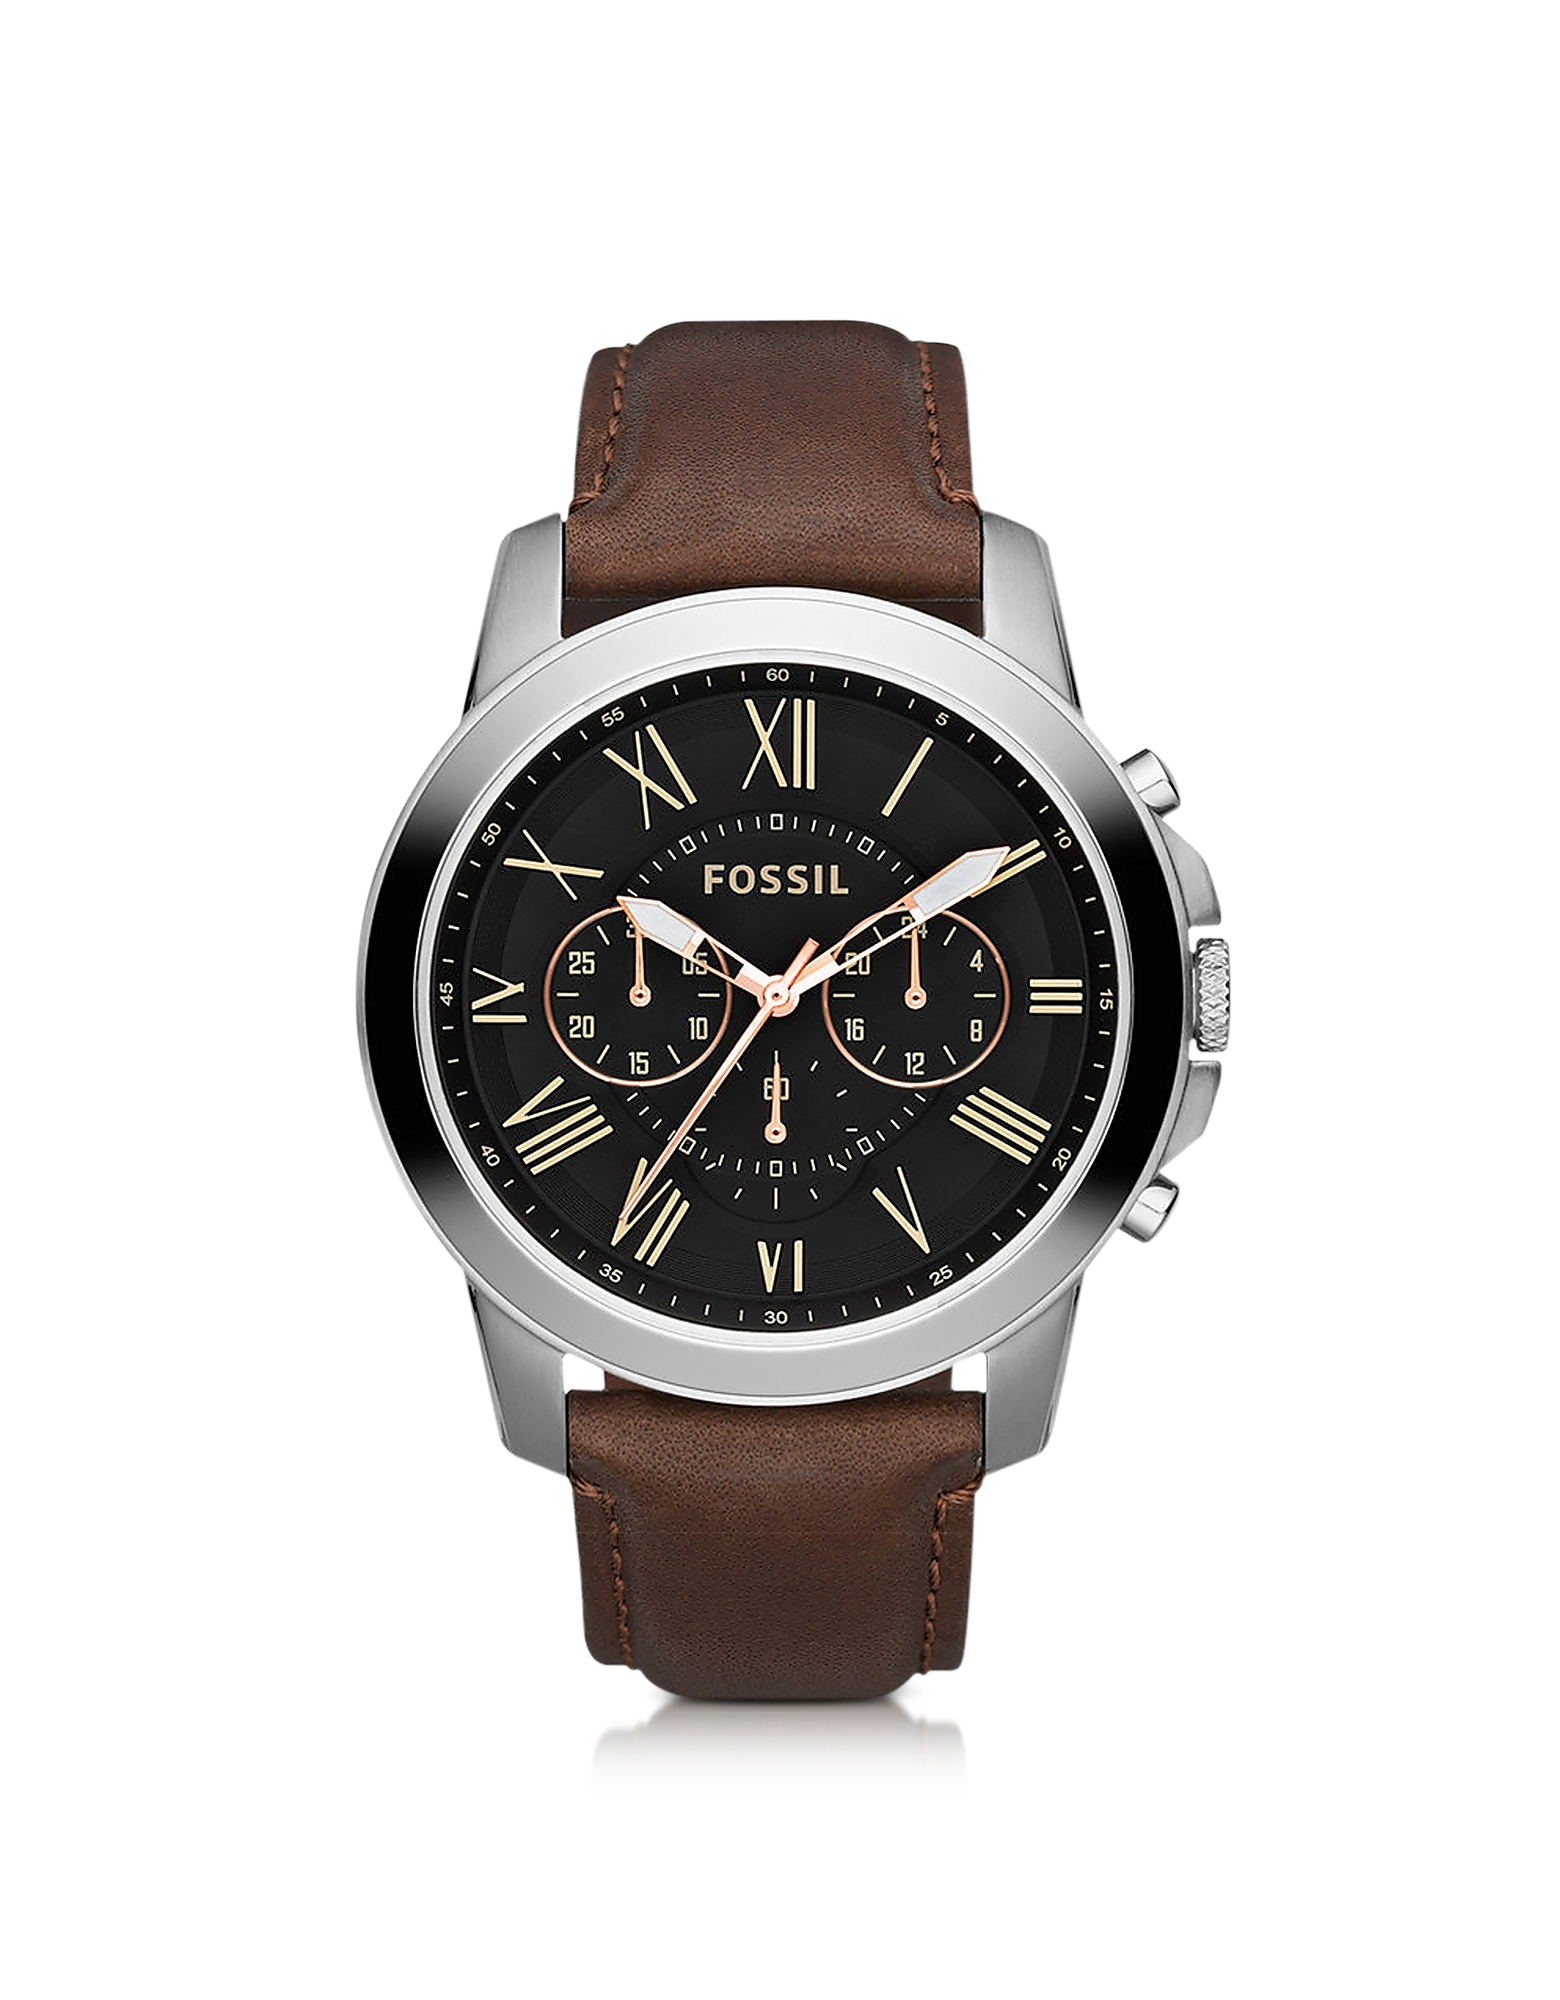 Fossil Men's Watches, Grant Chronograph Leather Men's Watch